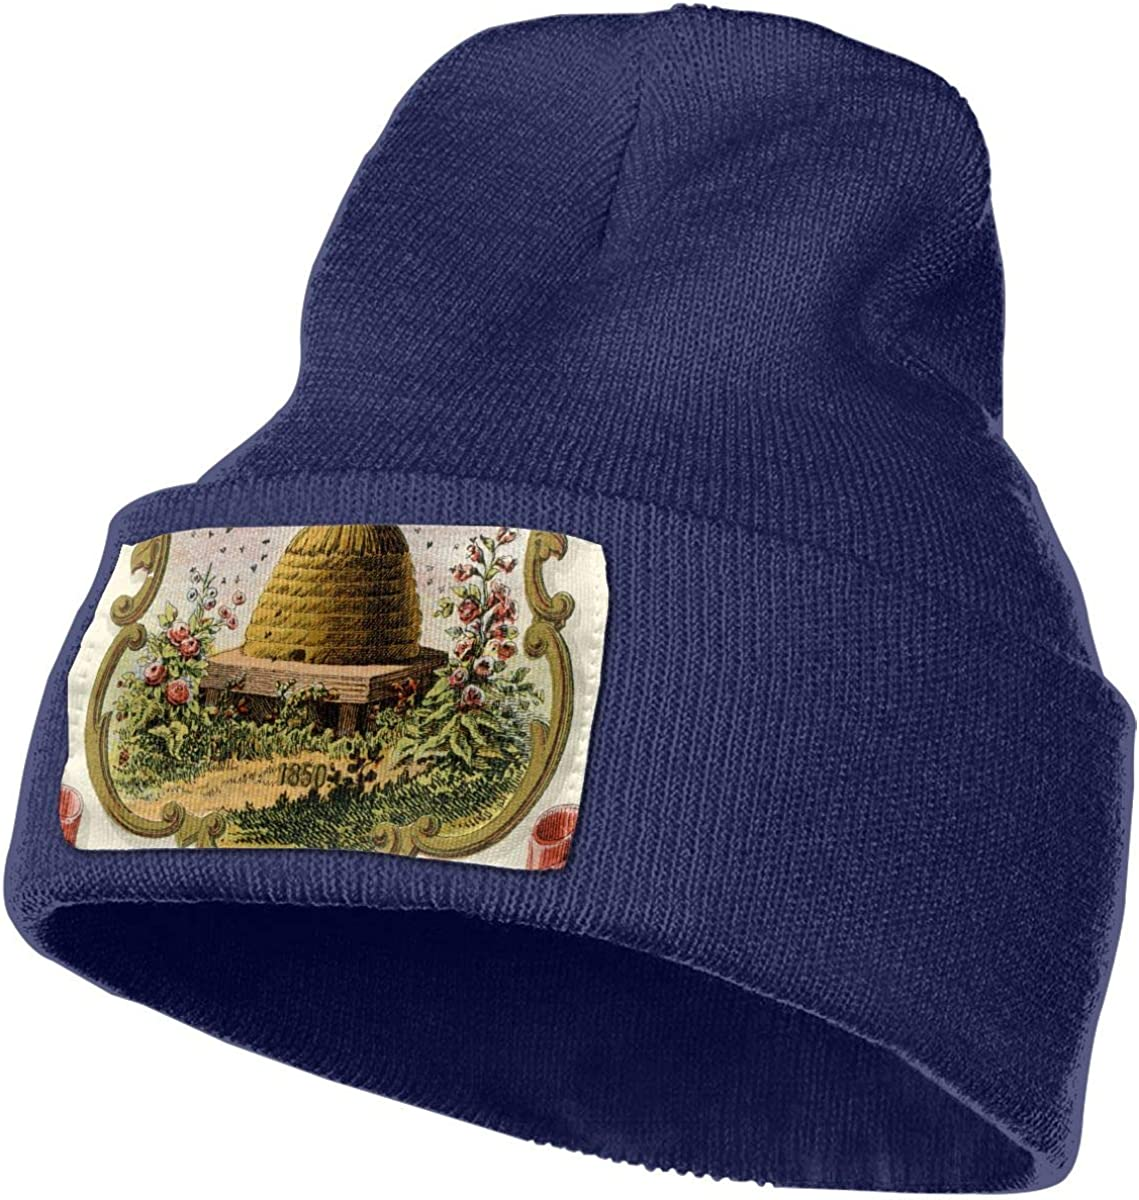 QZqDQ Utah Territory Coat of Arms Unisex Fashion Knitted Hat Luxury Hip-Hop Cap